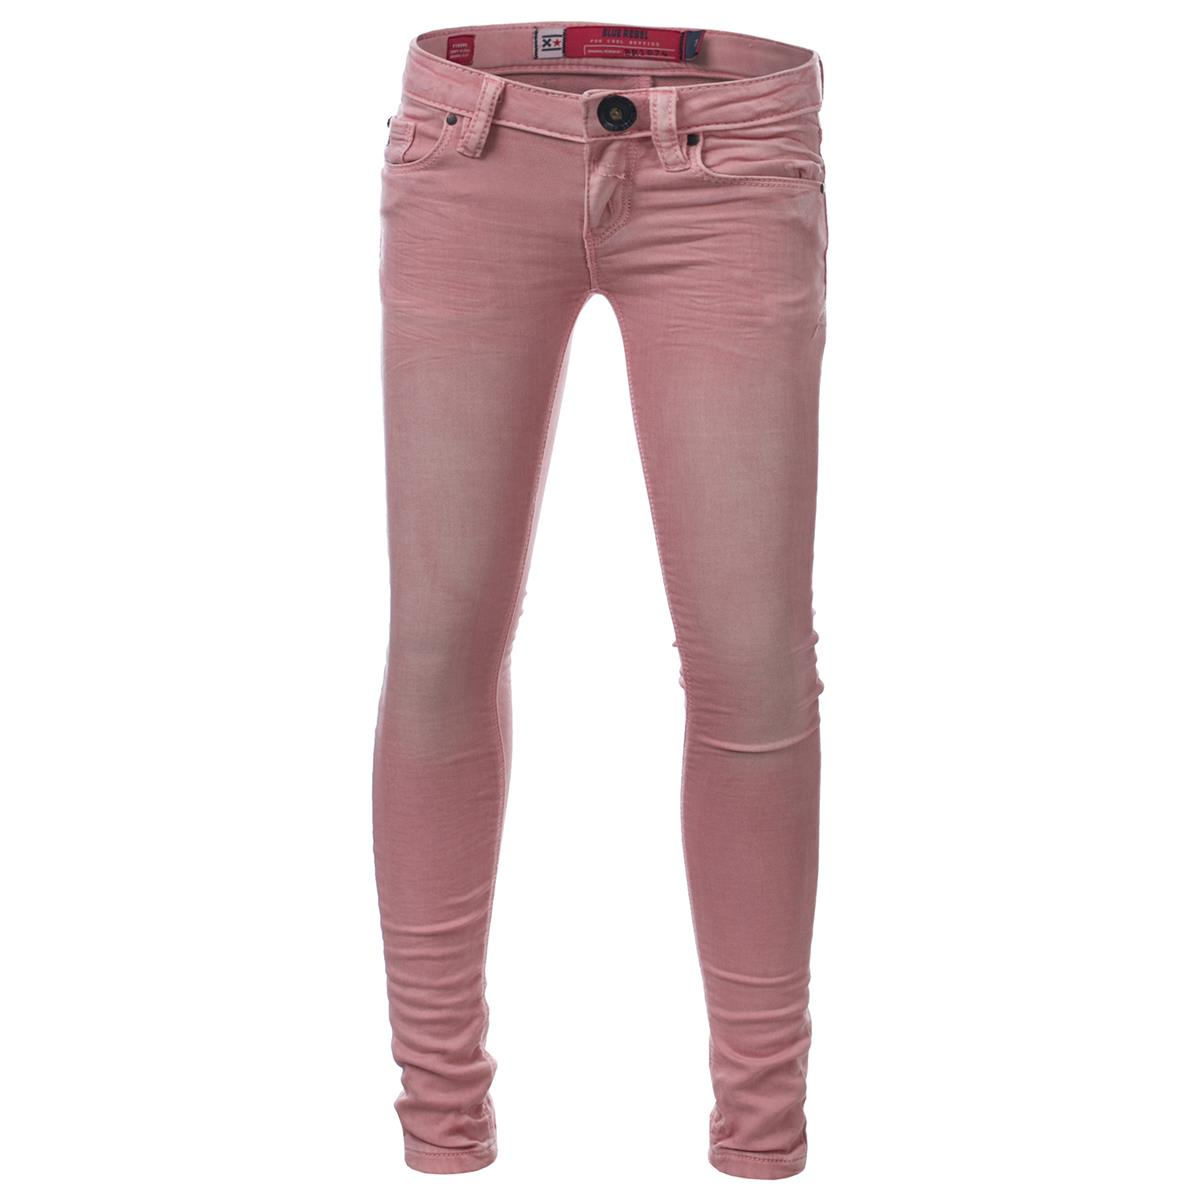 52157e094301af Skinny Fit Jeans And Dressed In Pink – DACC